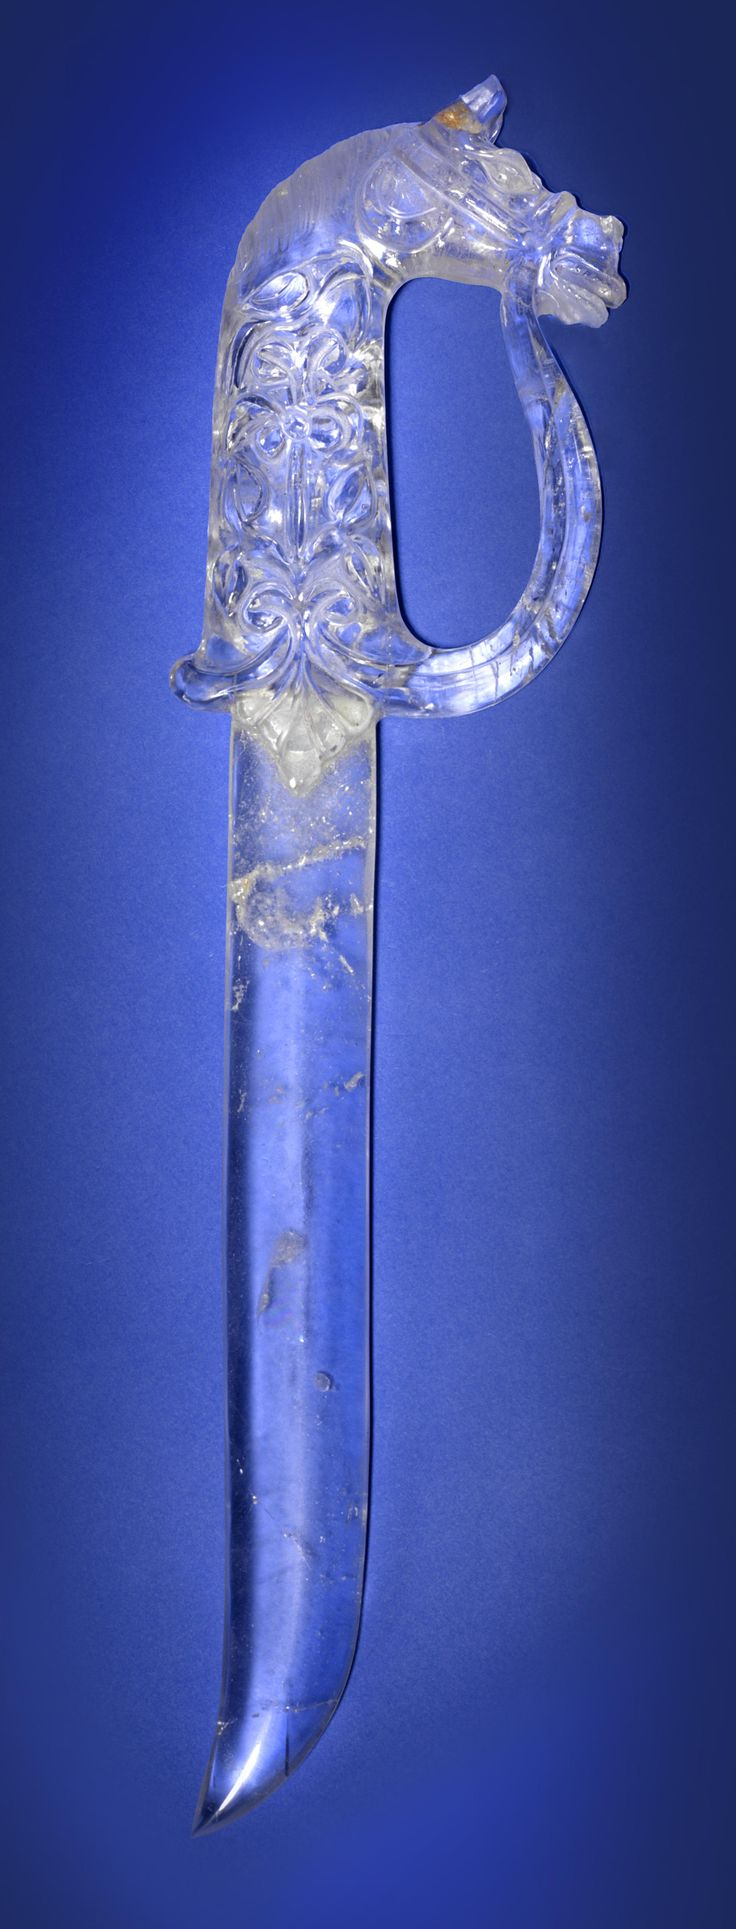 Himalayan Quartz Dagger India  Carved of quartz from the Himalayan Mountains, decorated with a horse's head and other Mughal themed motifs. Length 14 in.